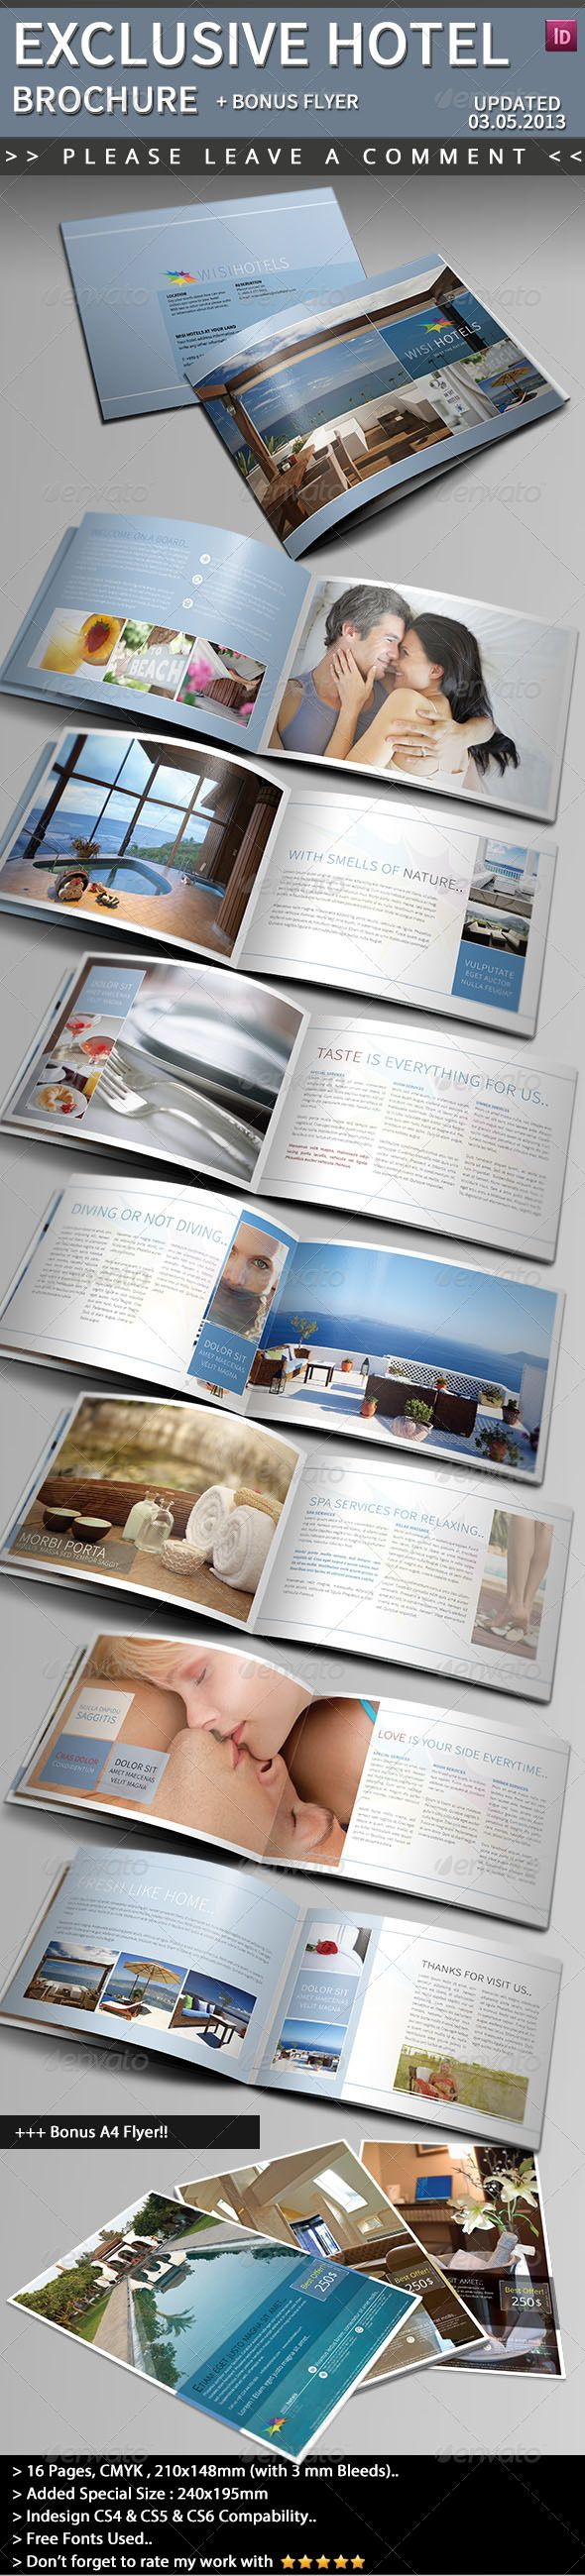 Exclusive Hotel Brochure  Hotel Brochure Brochure Template And